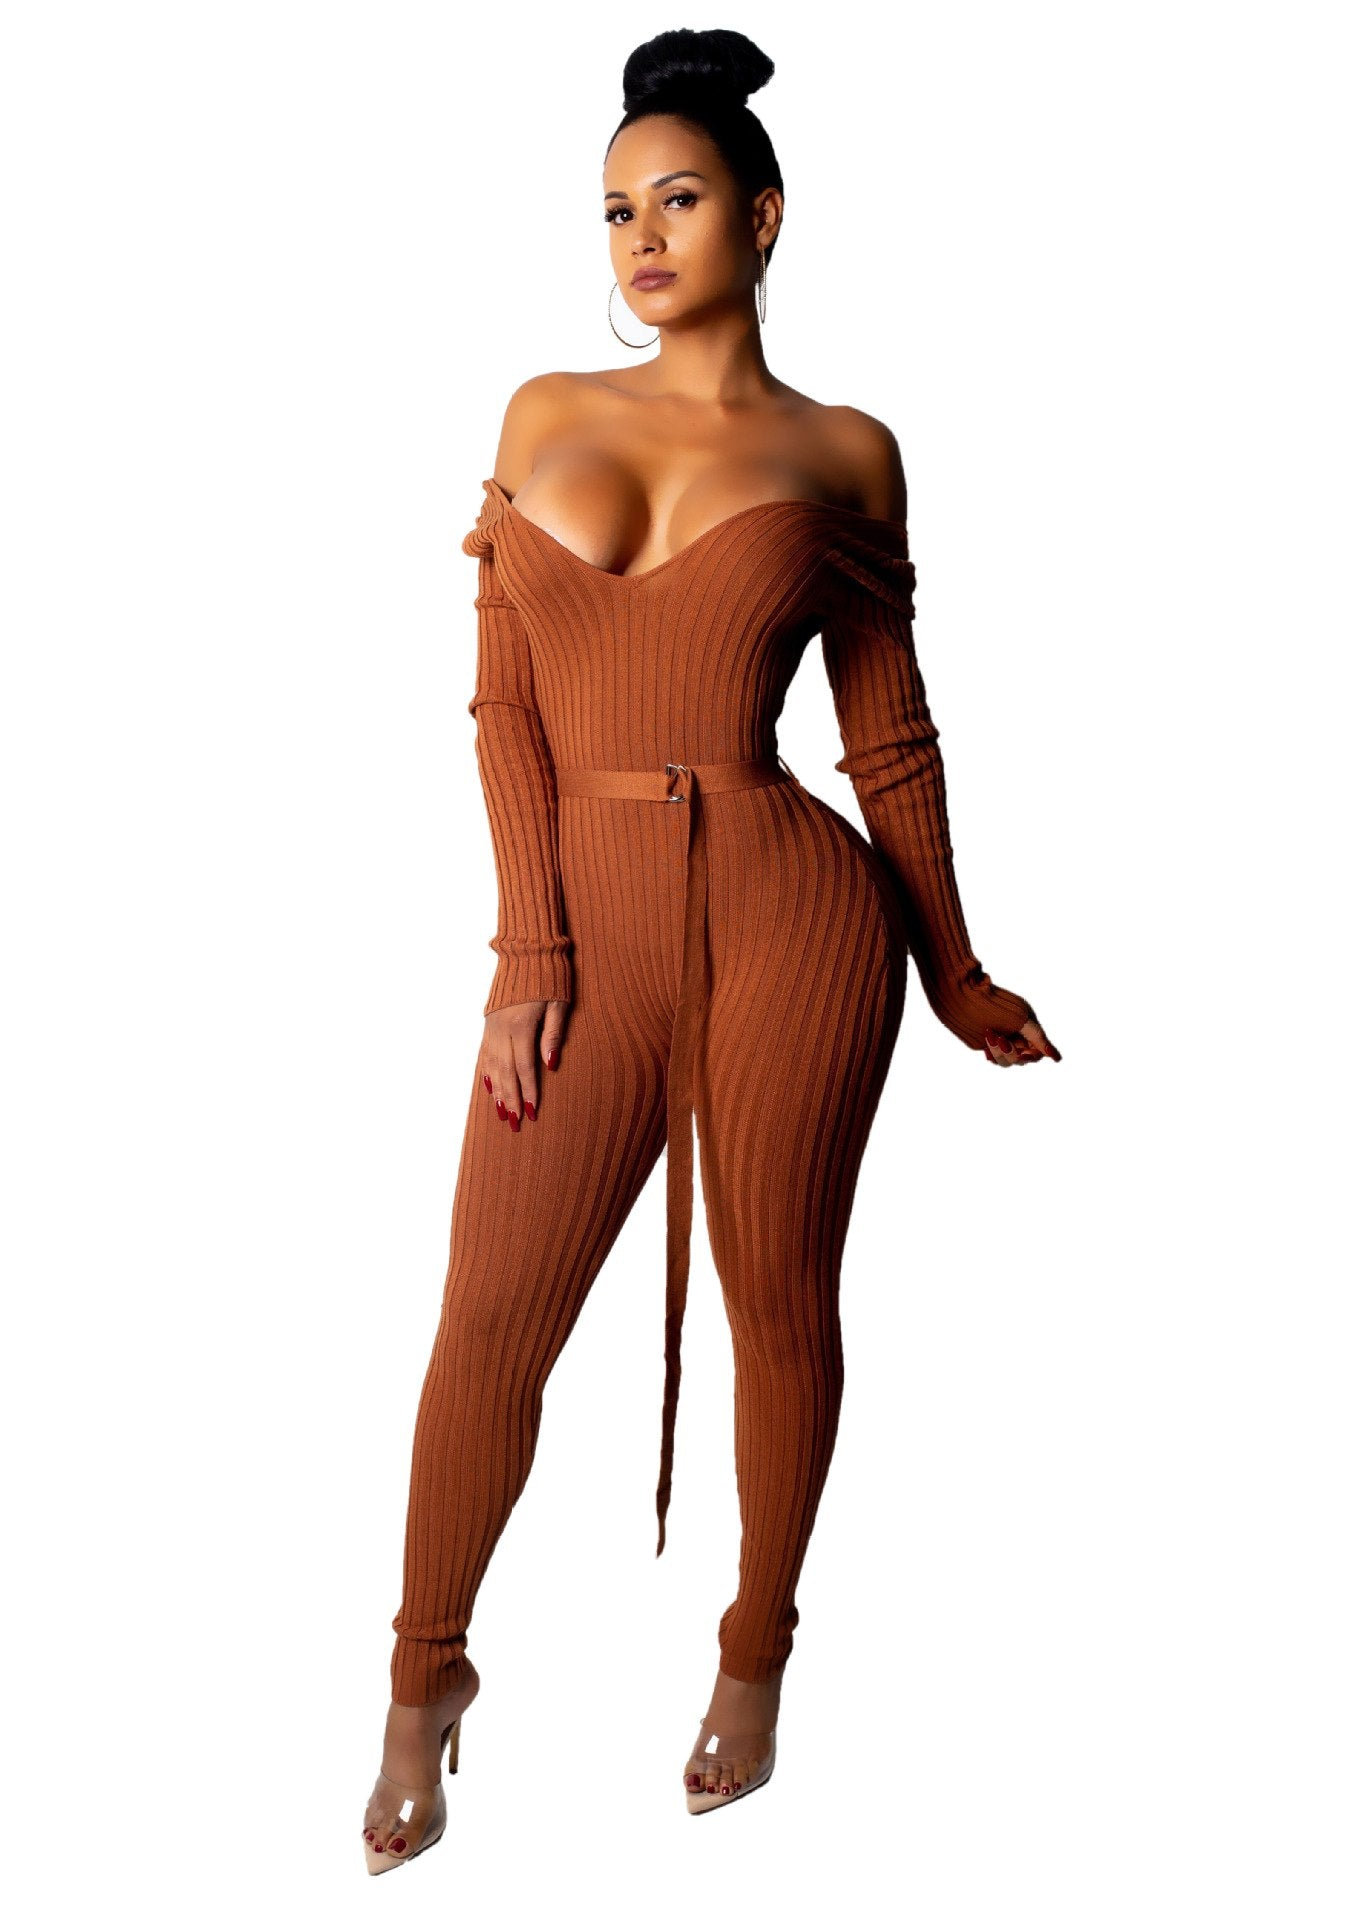 b11f53e3 Long Pants Elegant Long Sleeve Knitting Body Femme Jumpsuit – Pink ...